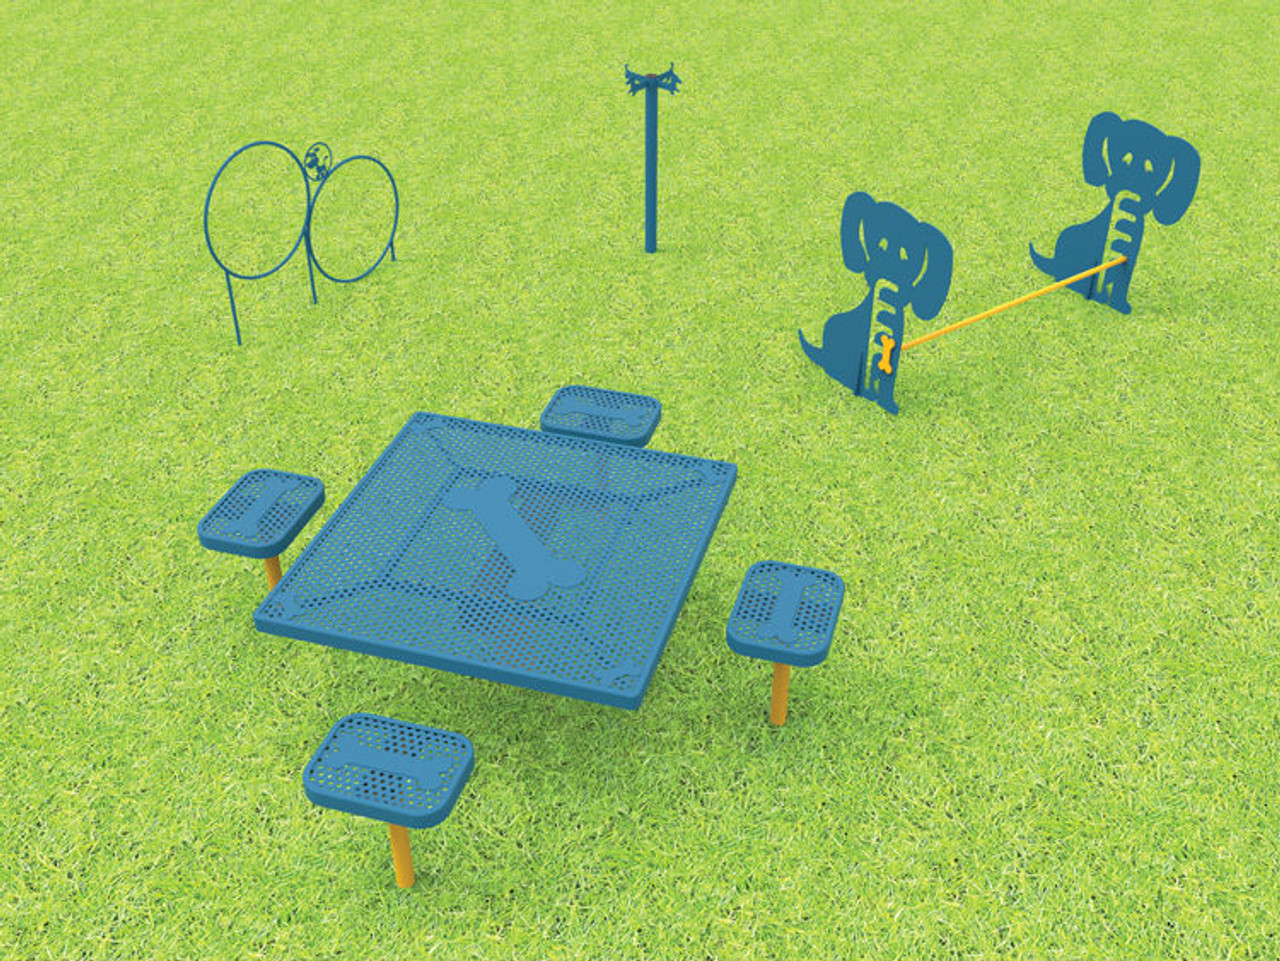 Dogs N Play Small Dog Park Kit